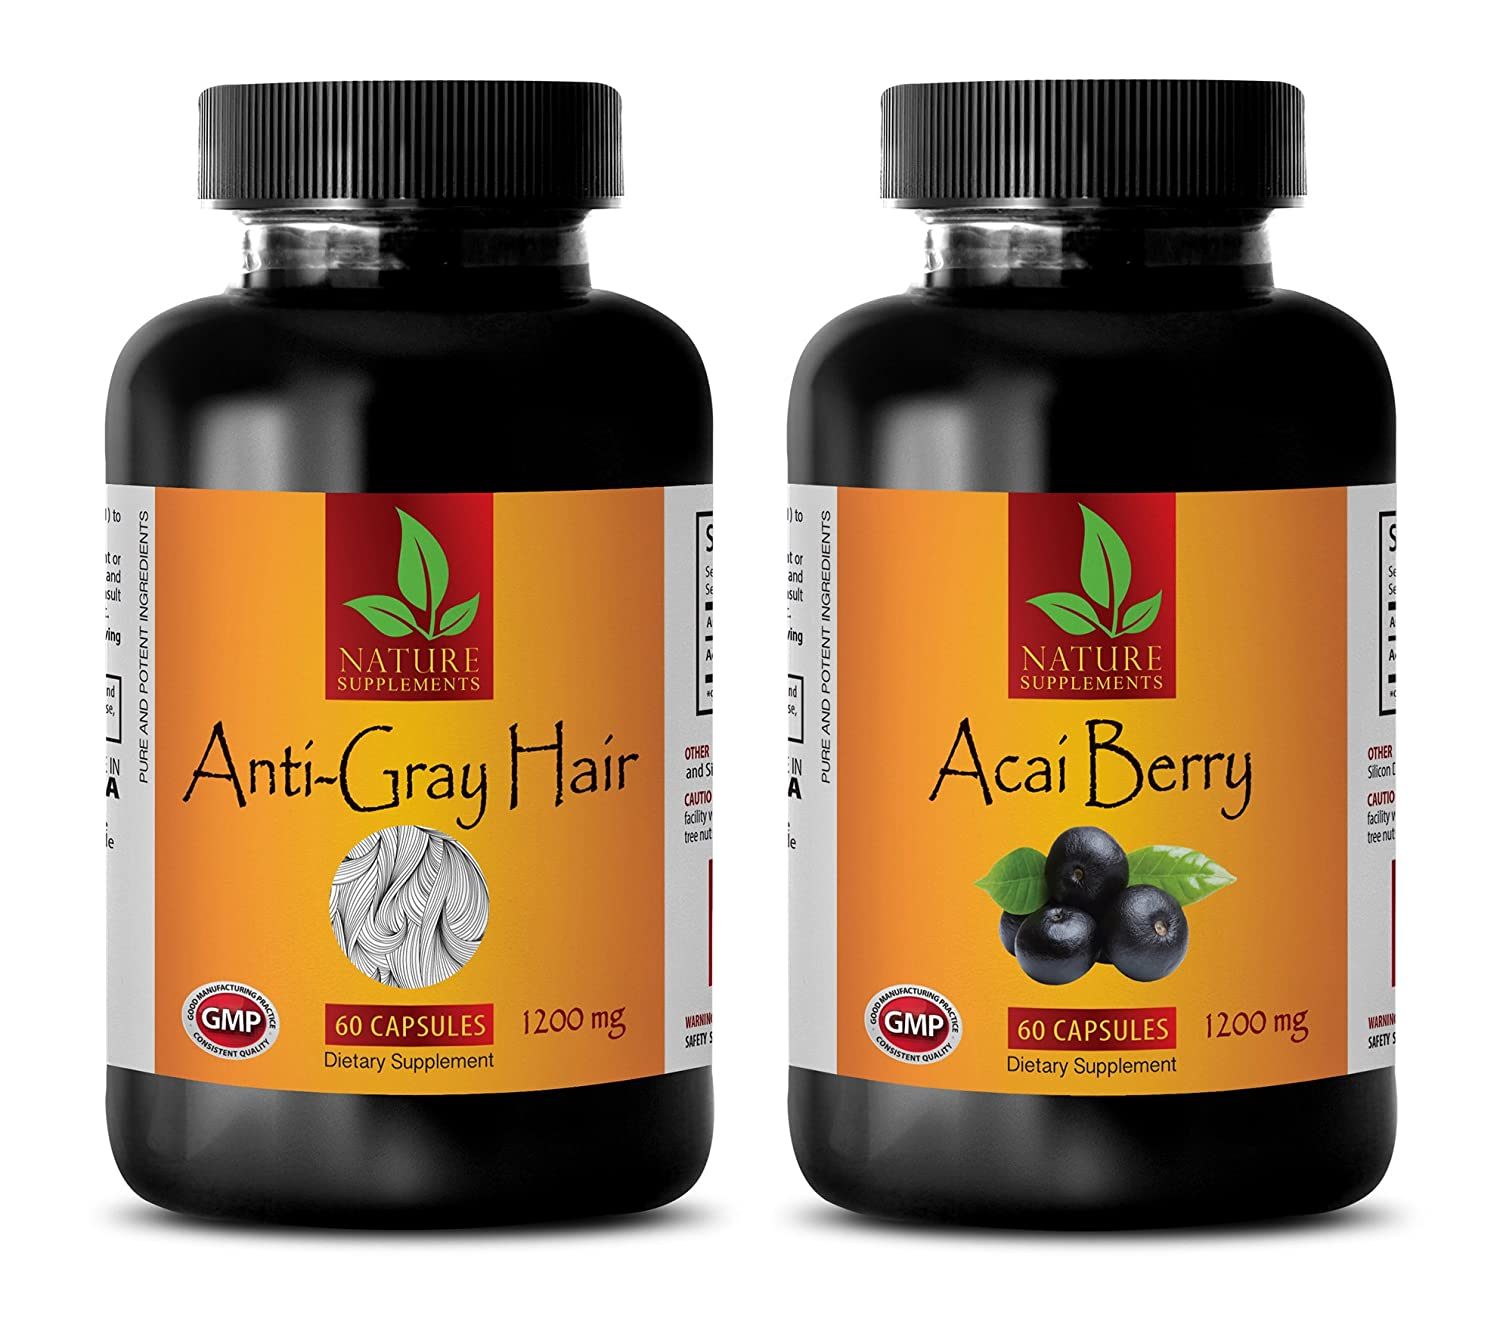 antiaging blend essential oil - GRAY HAIR - ACAI BERRY - acai capsules - (2 Bottle Combo)